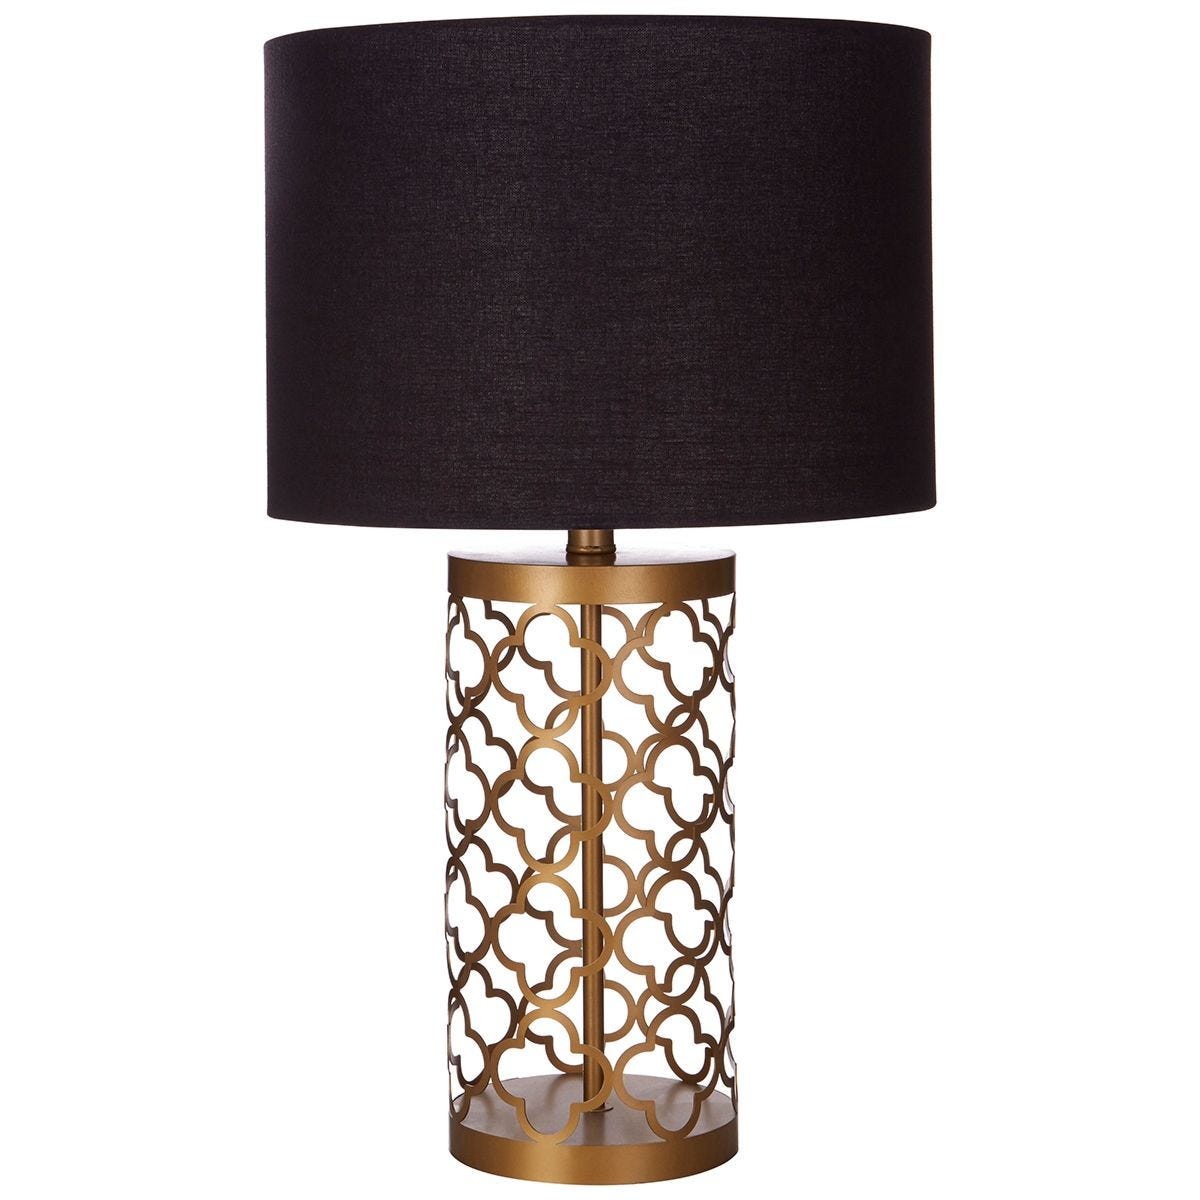 Premier Housewares Lexis Table Lamp with Copper Lattice Body & Black Shade